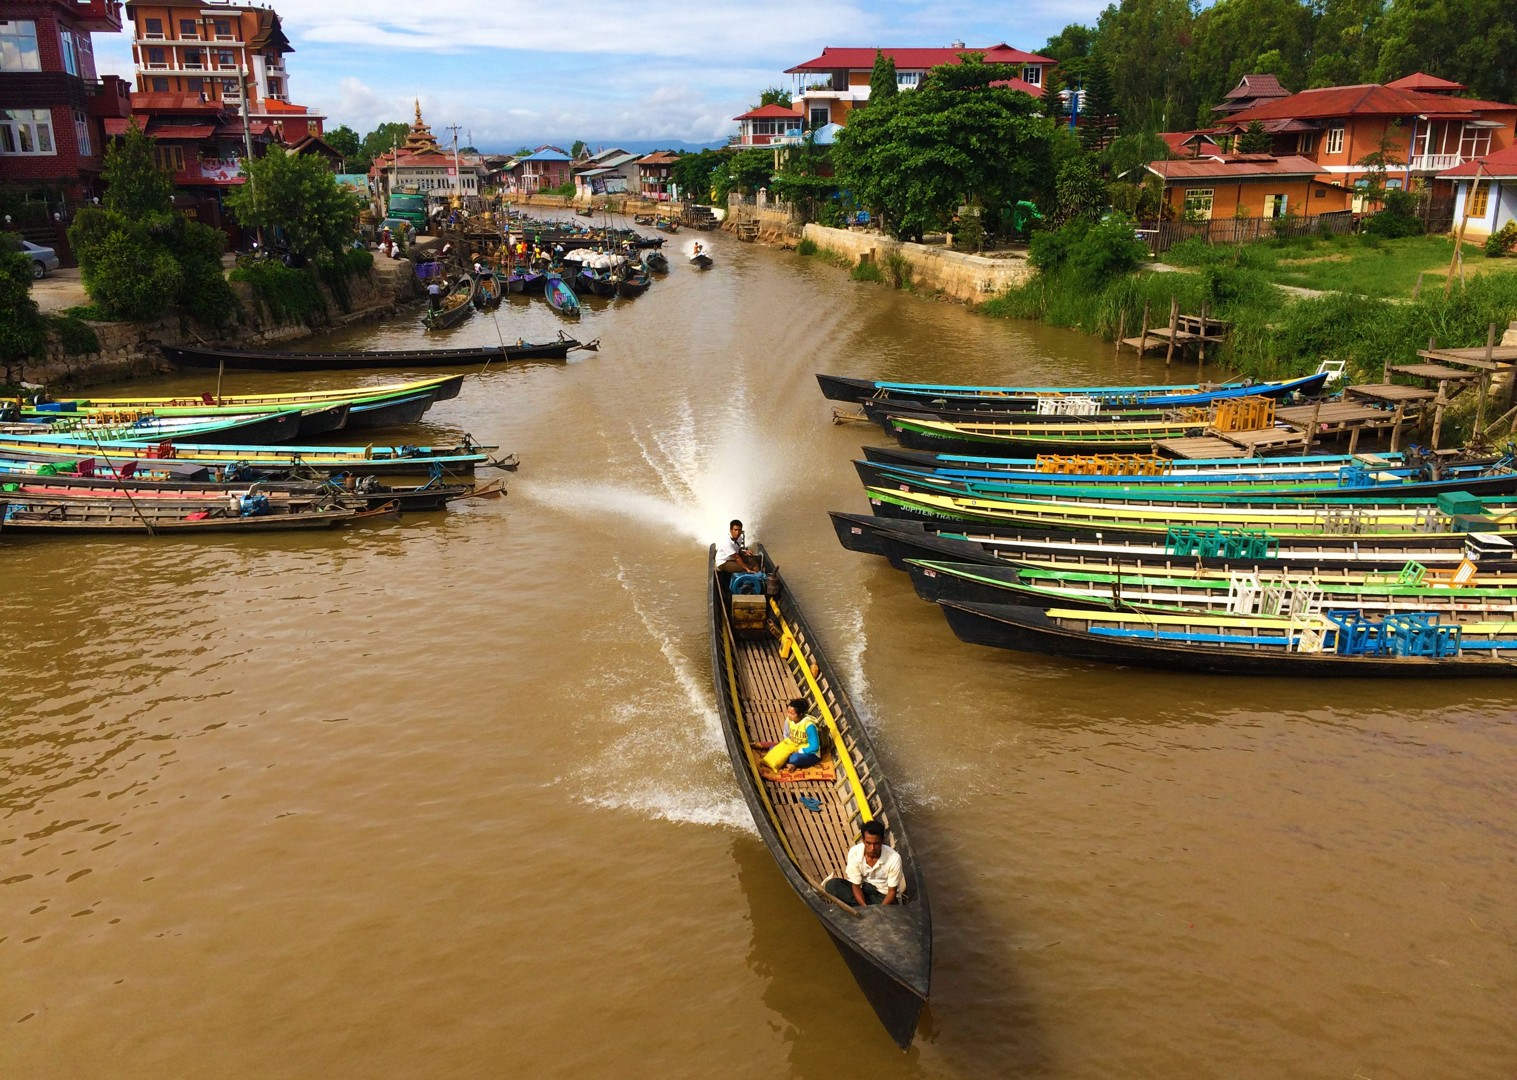 river-boats-guided-cycling-holiday-burma.jpg - Burma - Bagan and Beyond - Cycling Adventures